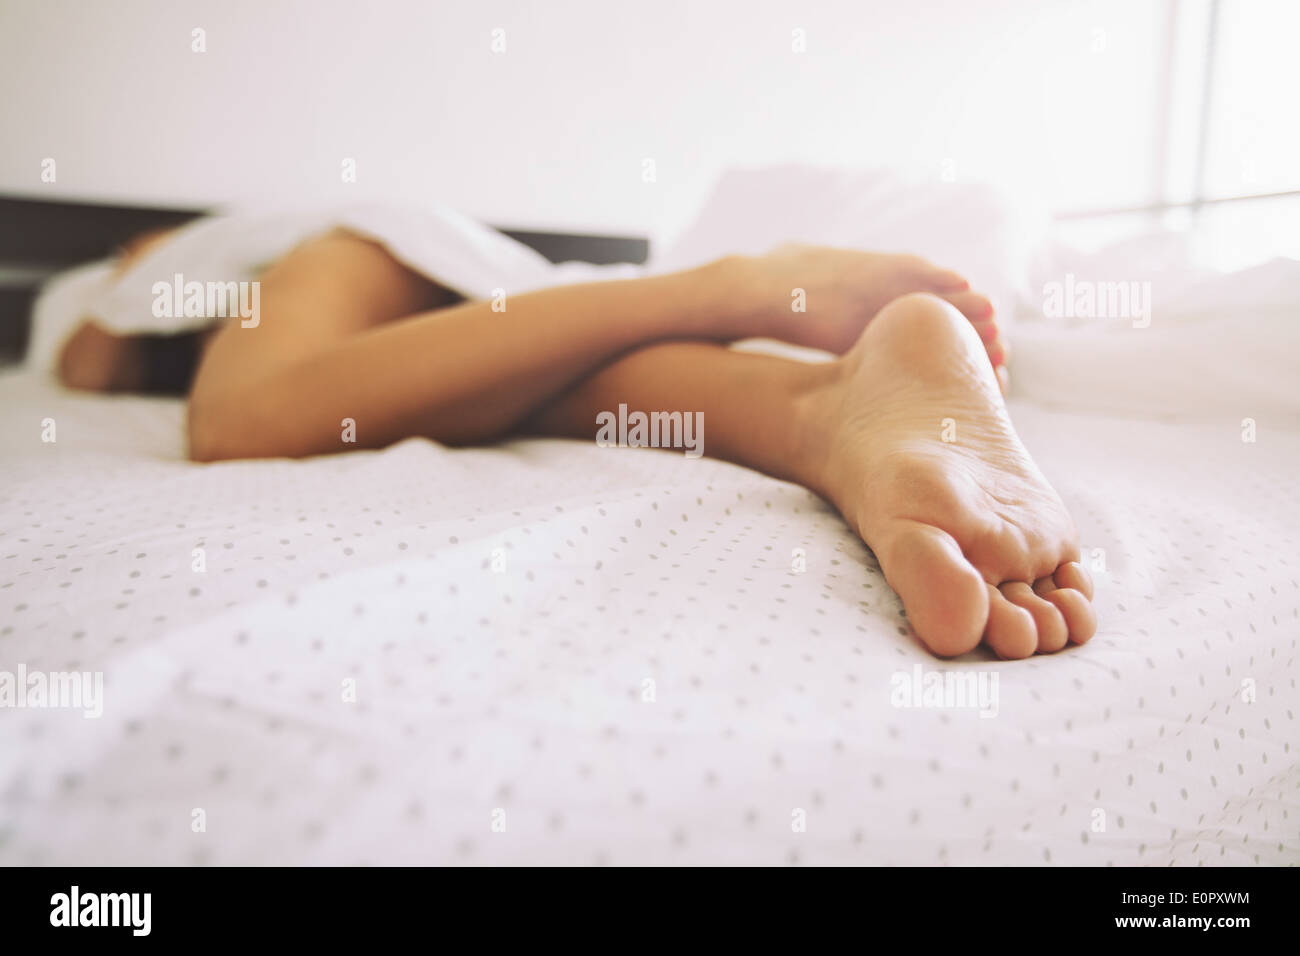 Topic Feet during sex naked